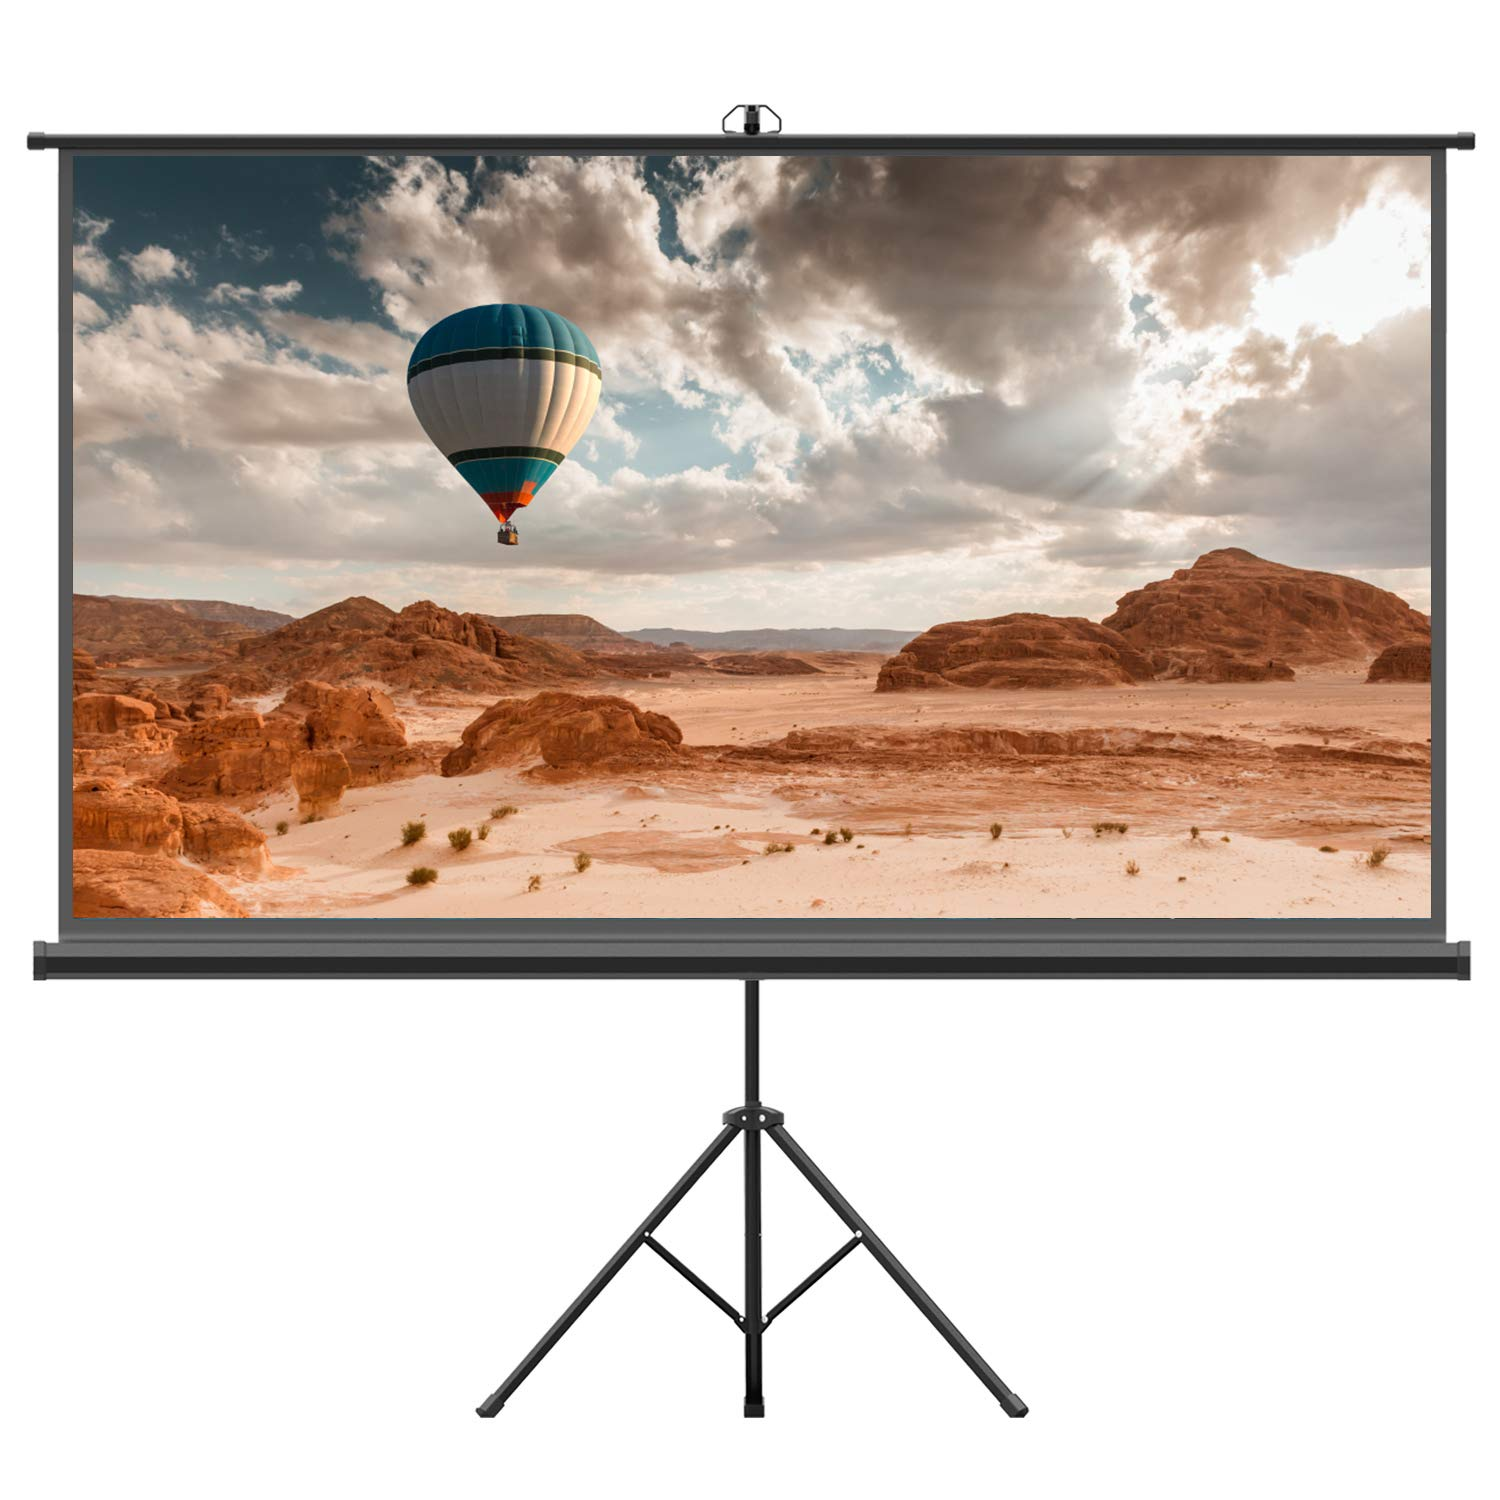 Projector Screen with Tripod Stand – FEZIBO 100 inch 16:9 HD Projection Screen with Stand Portable Foldable for Outdoor Indoor,160° Viewing Angle